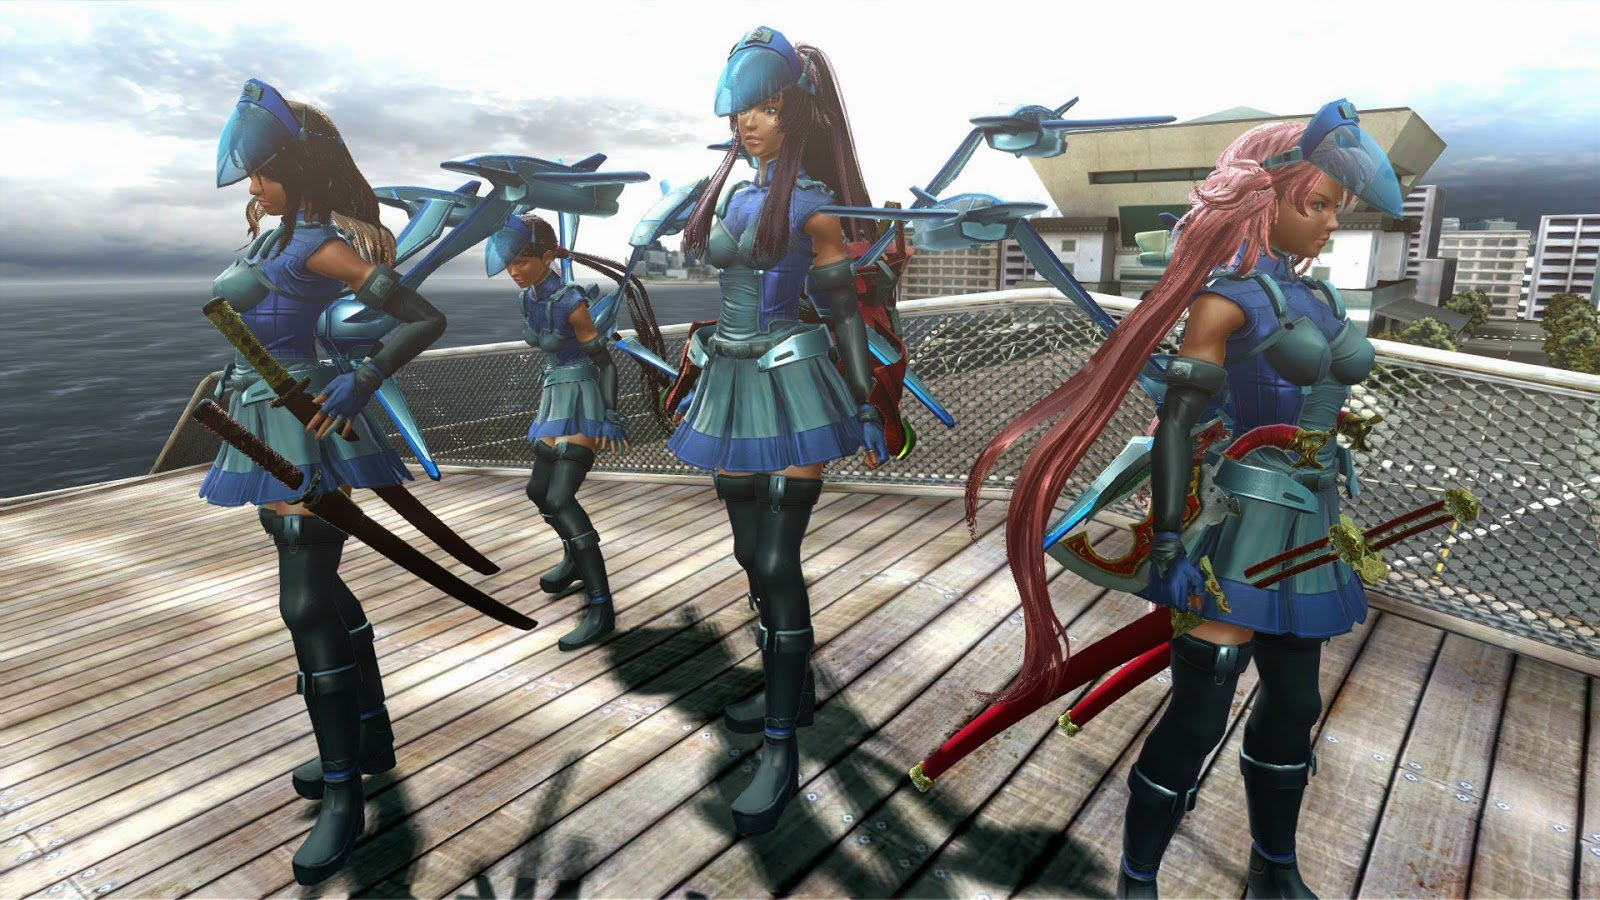 Onechanbara Z2 Chaos Review Coming To Terms With The B Game Ps4 Rice Digital